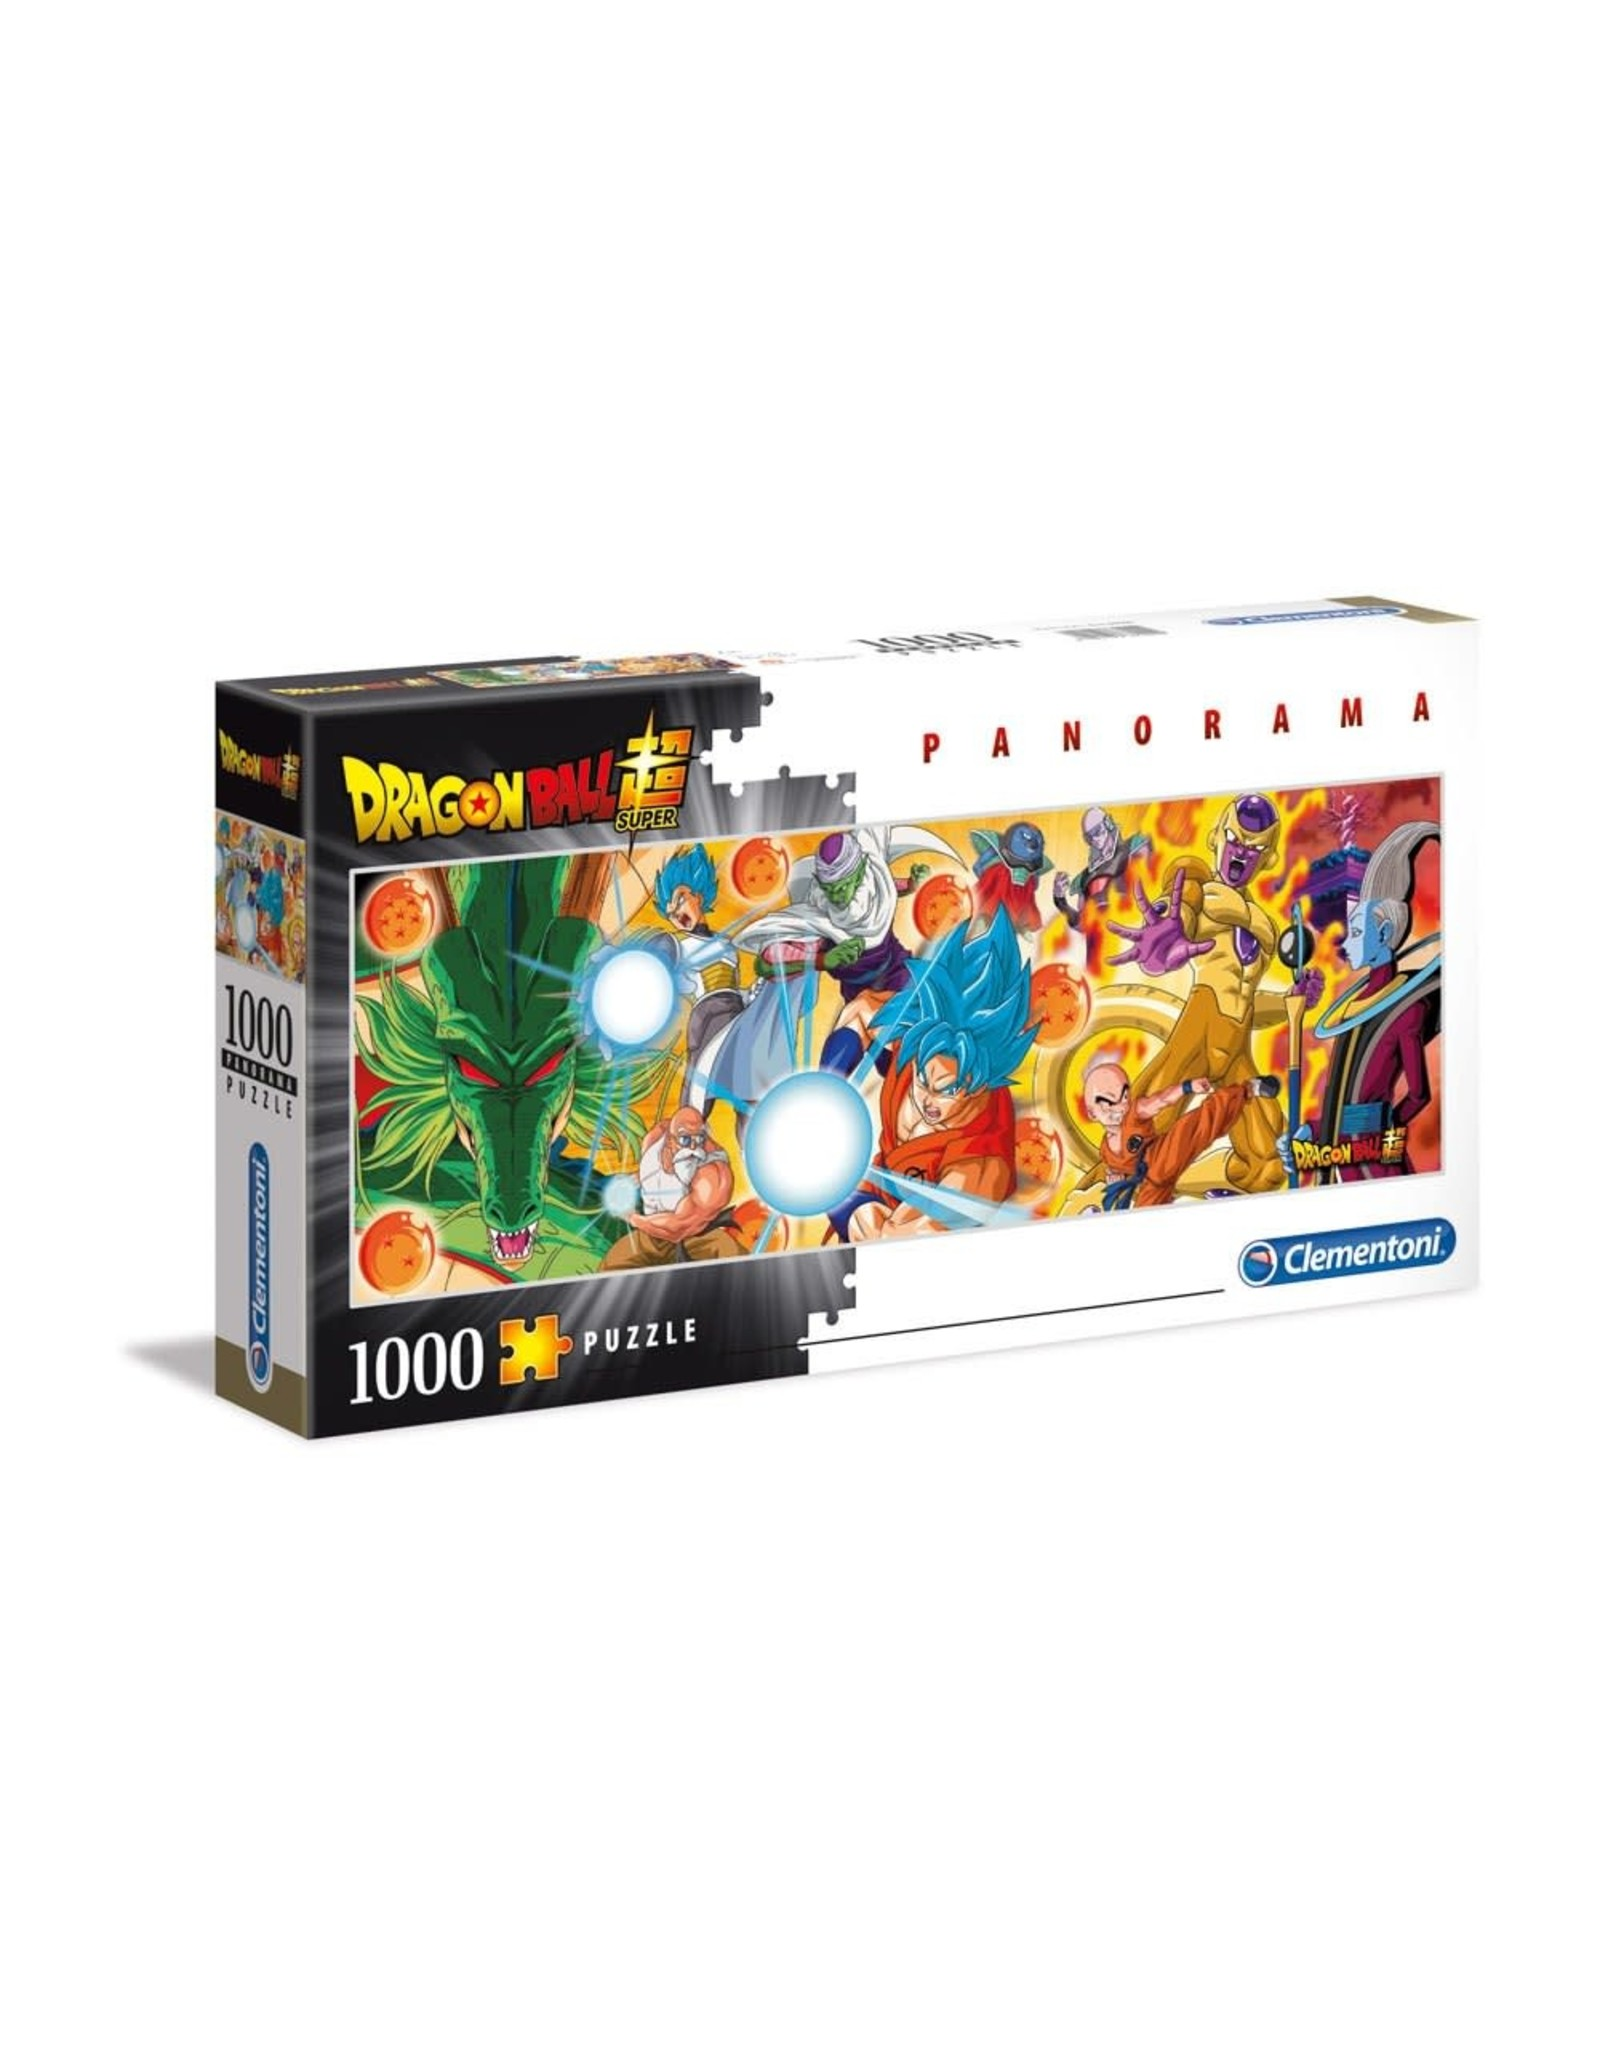 Clementoni DRAGON BALL SUPER Puzzle 1000P - Panorama Characters